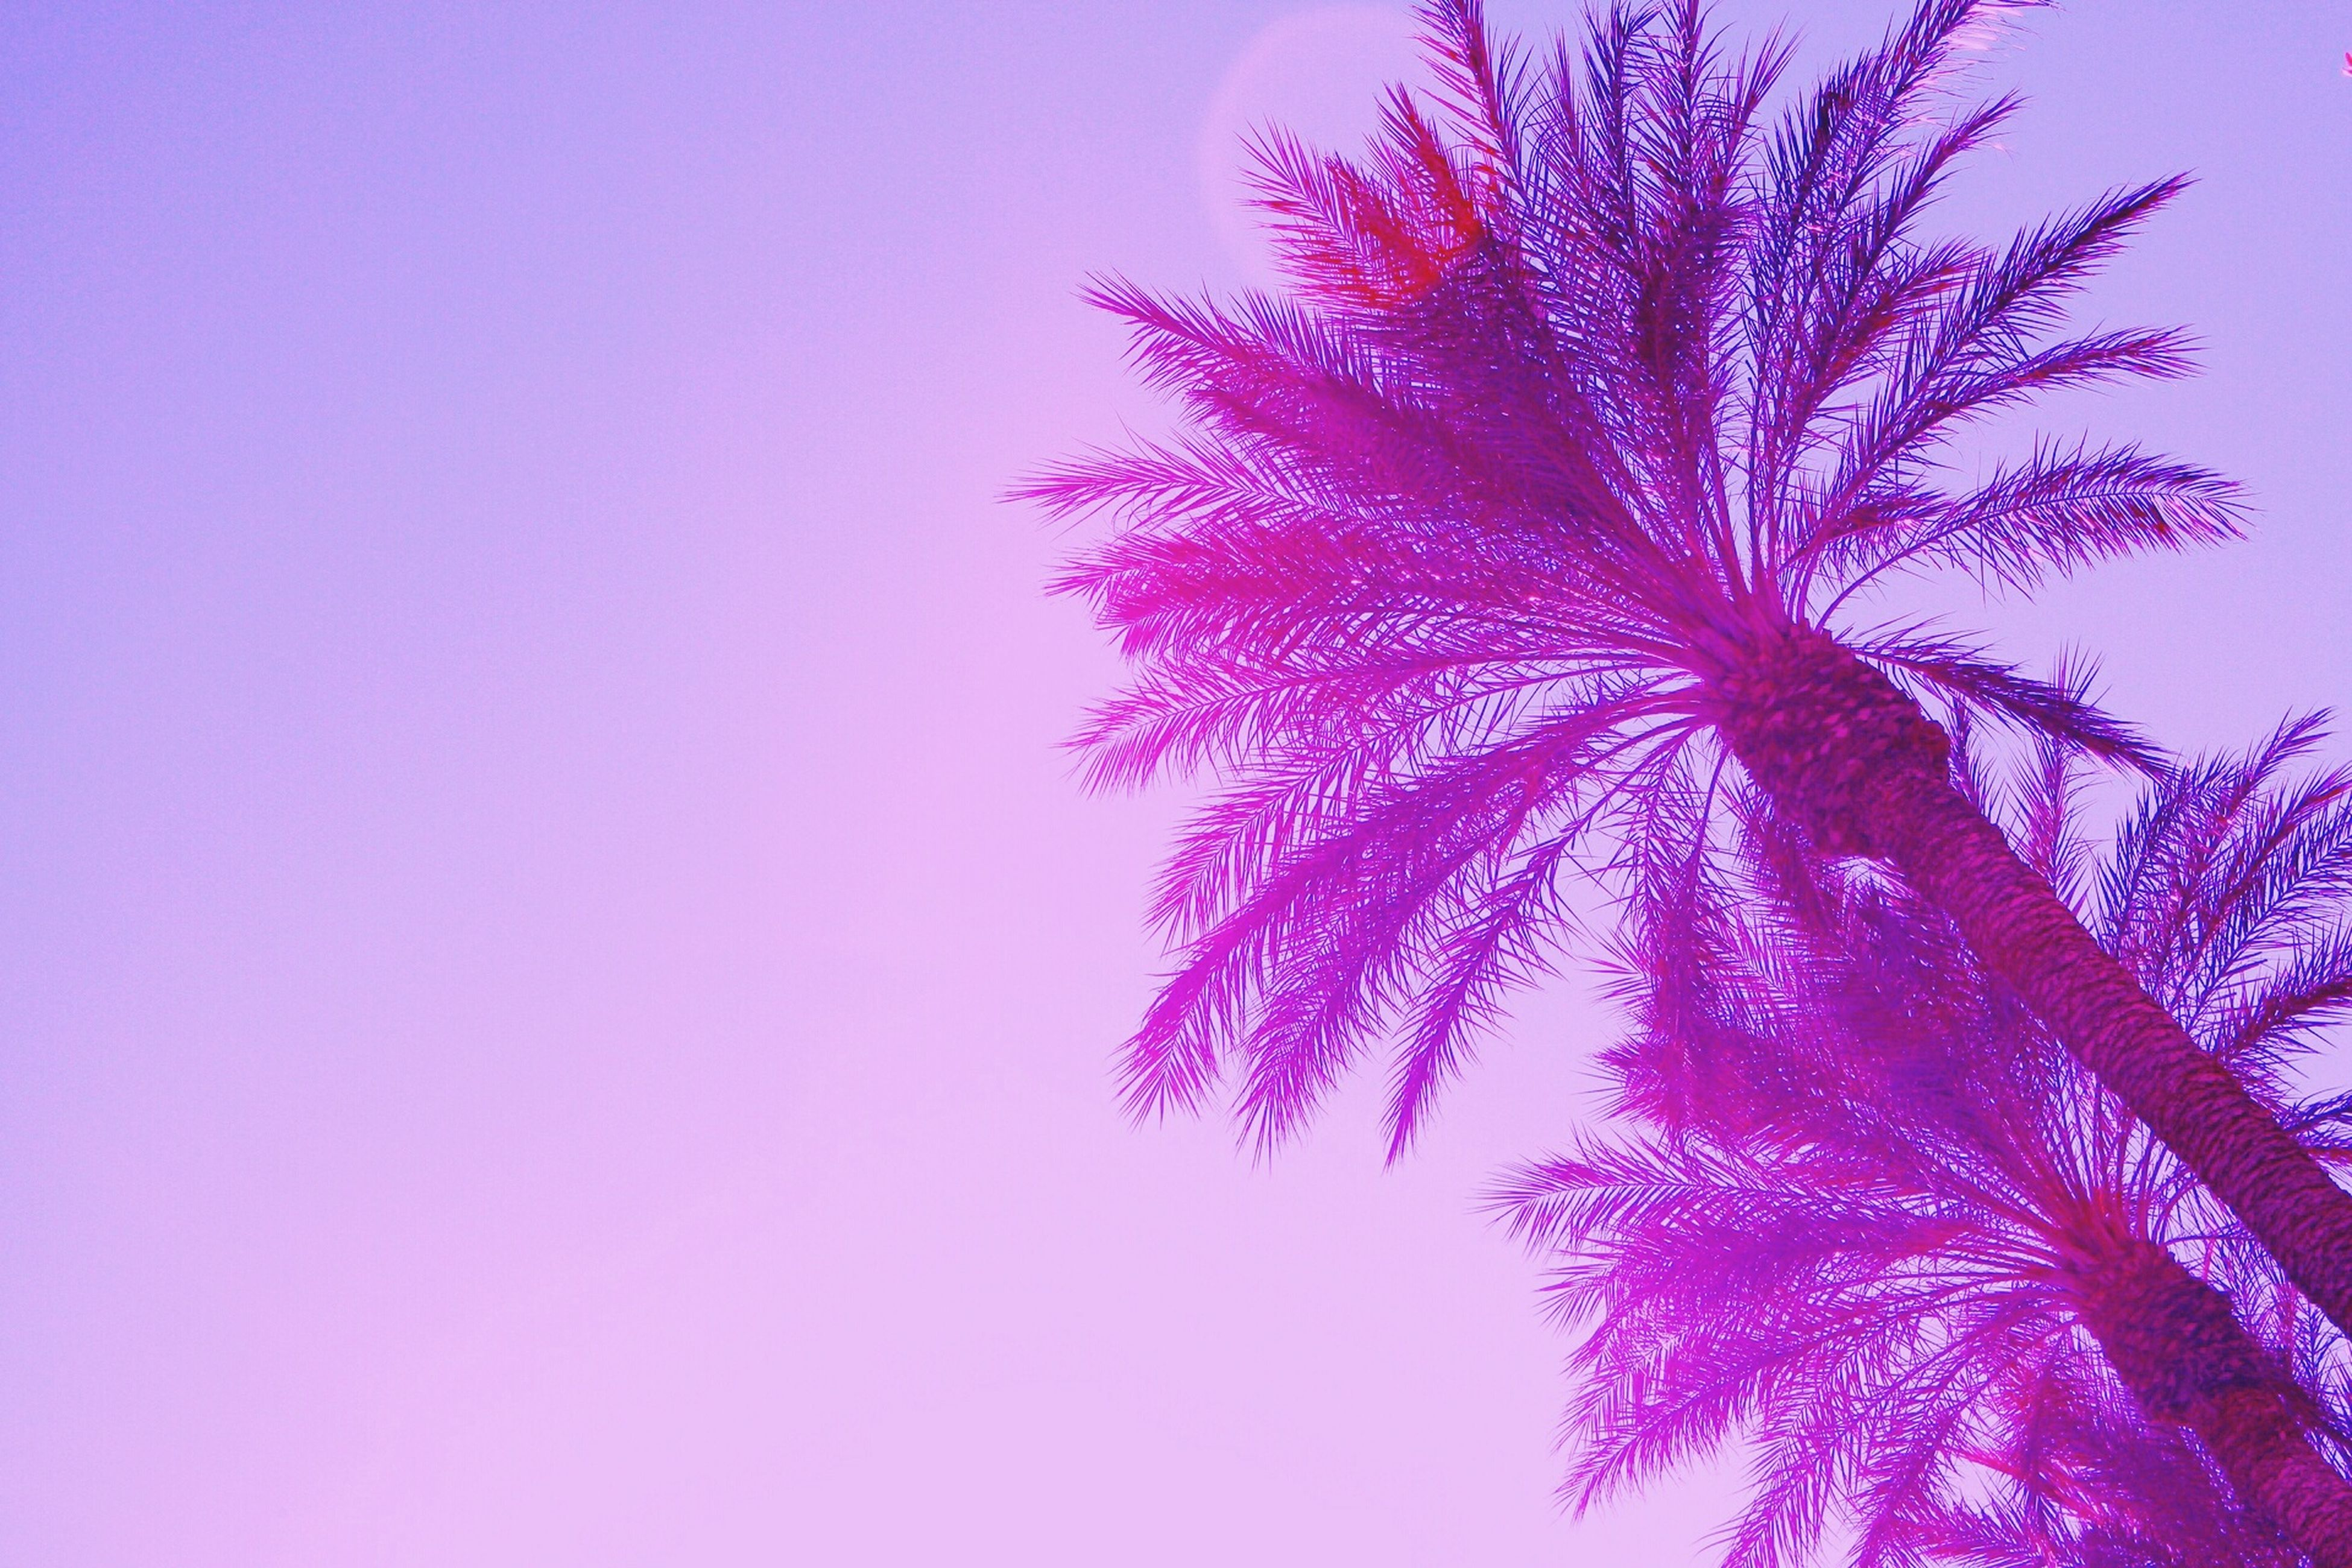 clear sky, low angle view, tree, beauty in nature, copy space, growth, nature, branch, blue, tranquility, scenics, no people, outdoors, pink color, tranquil scene, sky, palm tree, high section, purple, day